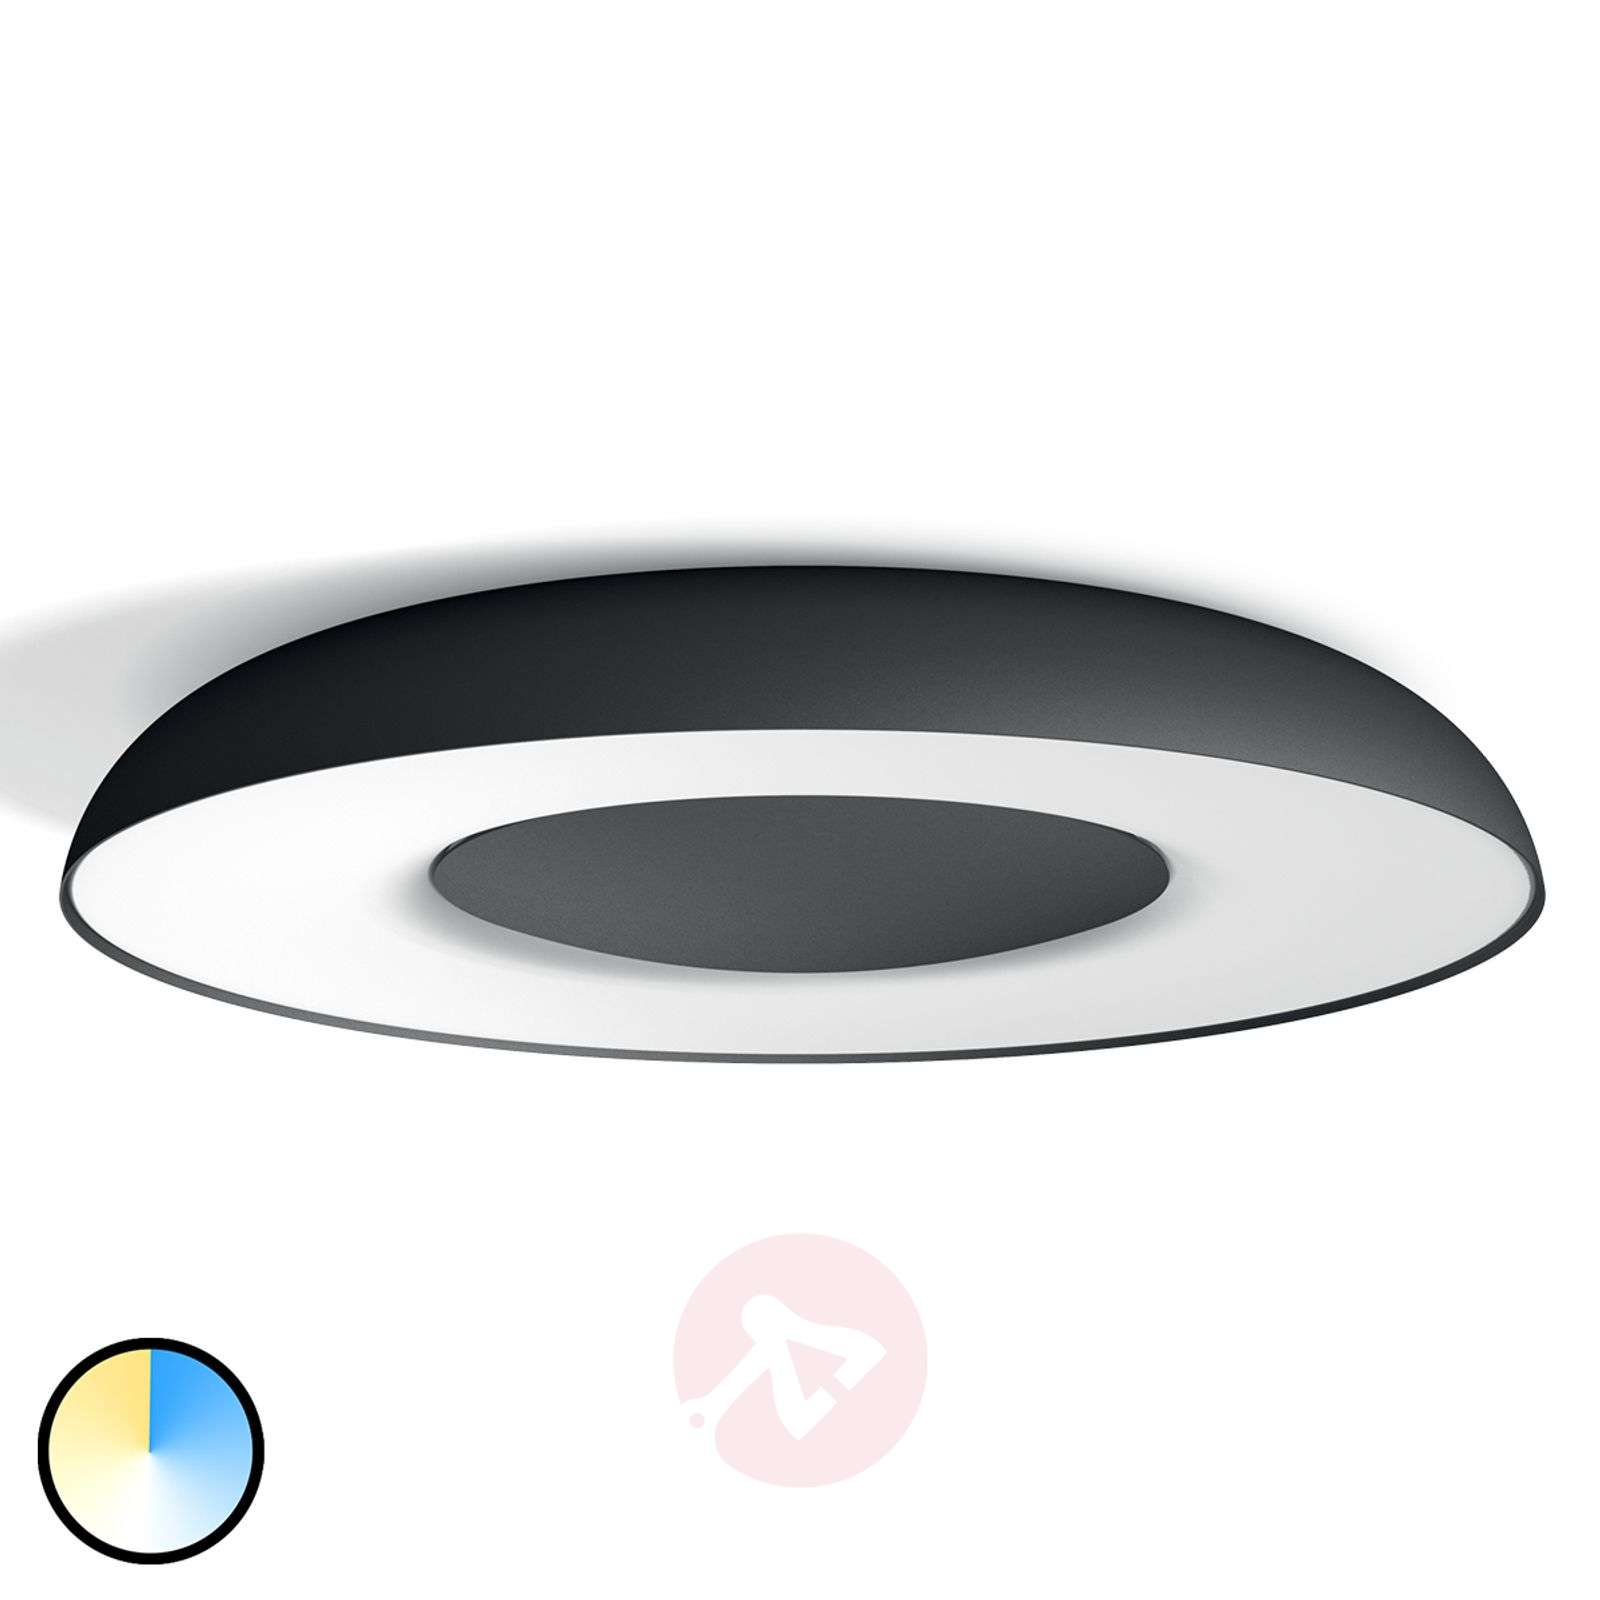 Plafoniere Esterno Philips : Acquista plafoniera a led still philips hue lampade.it